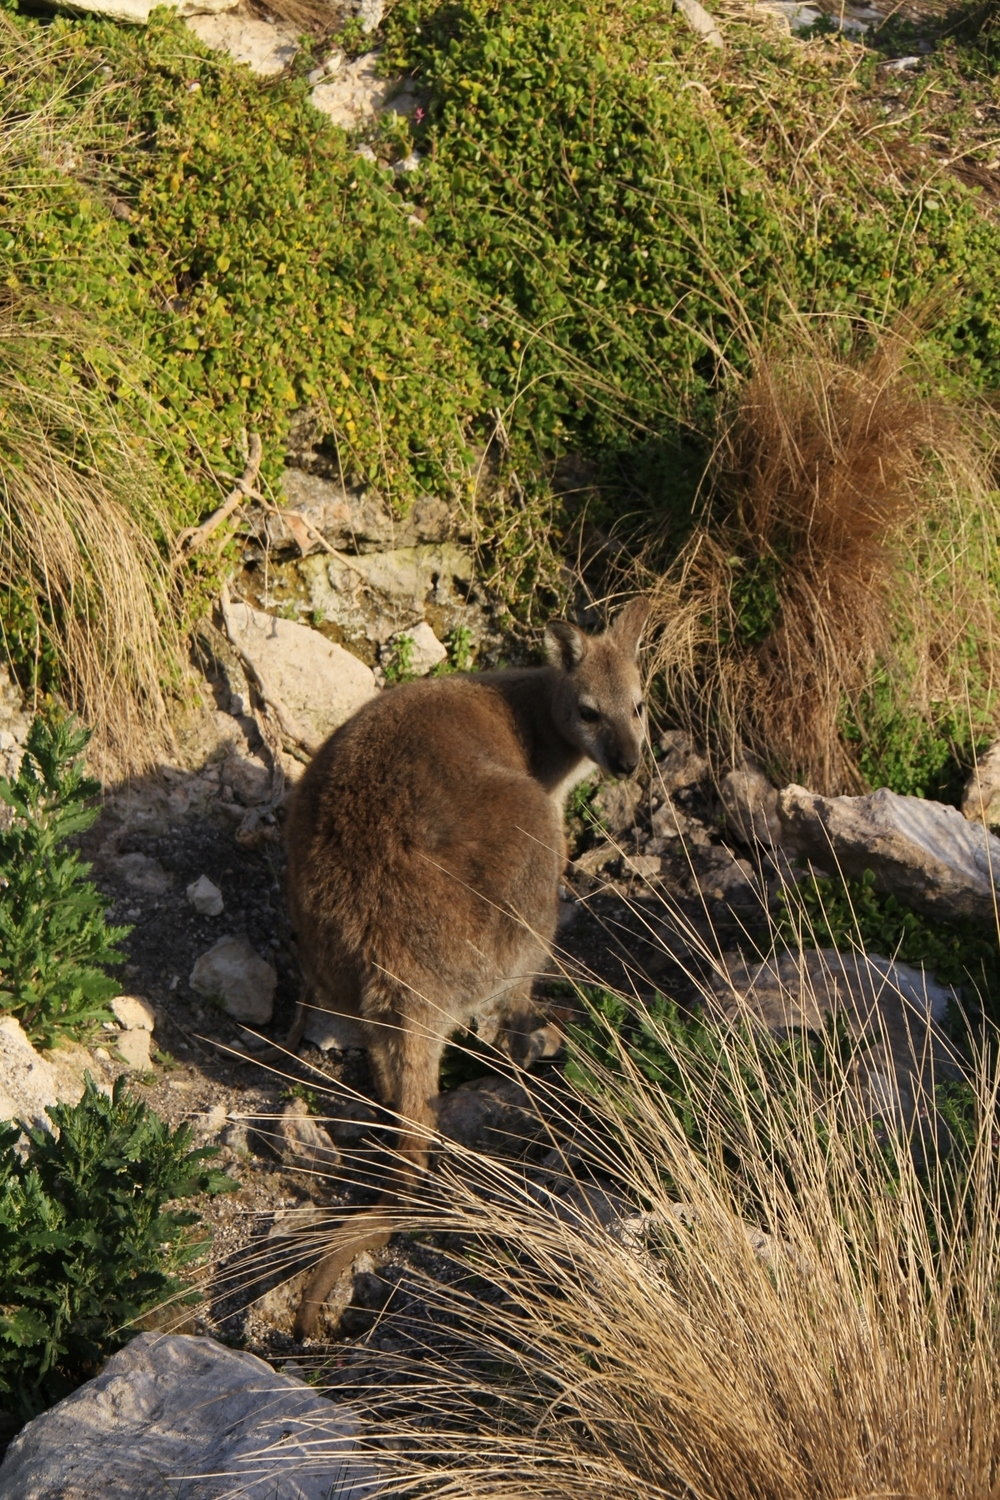 One of the locals , there were so many wallabies hopping around, they certainly were not shy.